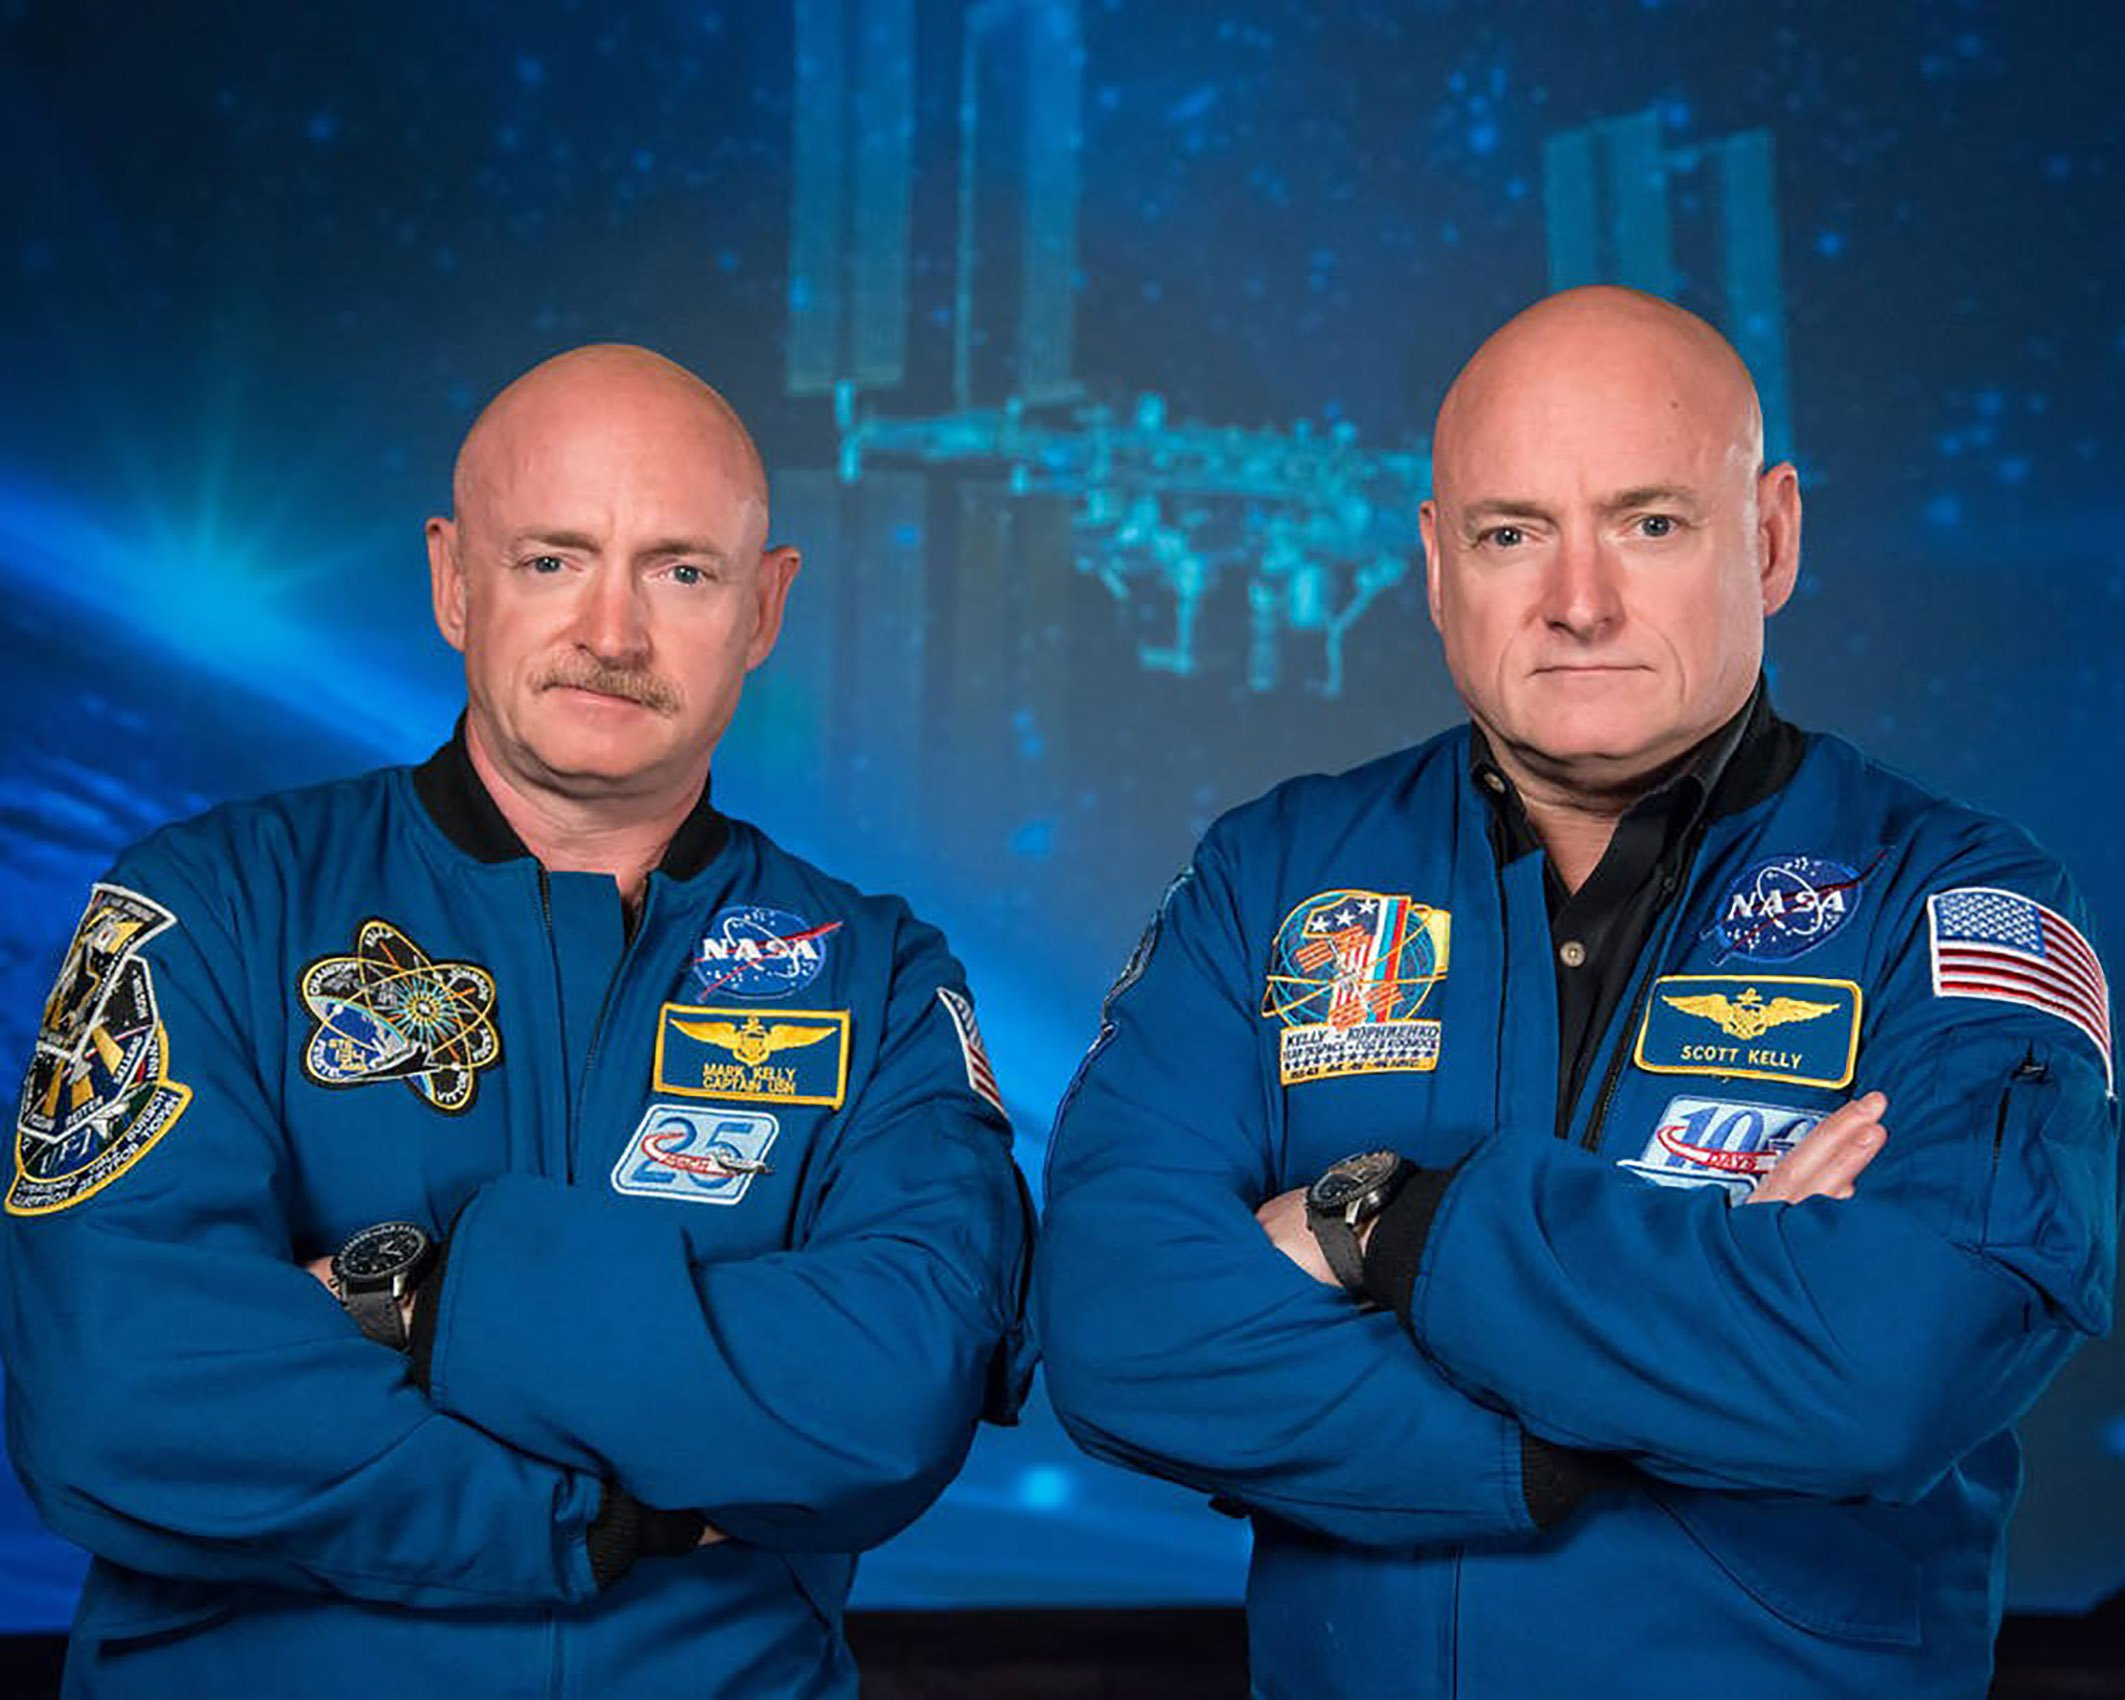 Recent print expelled by NASA shows former wanderer Scott Kelly (R), who was a Expedition 45/46 commander during his one-year goal aboard a International Space Station, along with his twin brother, former wanderer Mark Kelly (L). - The Twins Study, by a Journal Science, is assisting scientists improved know a impacts of spaceflight on a tellurian physique by a investigate of matching twins. Retired wanderer Scott Kelly spent 340 days in low-Earth circuit aboard a International Space Station while late wanderer Mark Kelly, his matching twin, remained on Earth. The twins genetic likeness supposing scientists with a reduced series of variables and an ideal control group, both critical to systematic investigation. (Photo by Robert MARKOWITZ / NASA / AFP)ROBERT MARKOWITZ/AFP/Getty Images